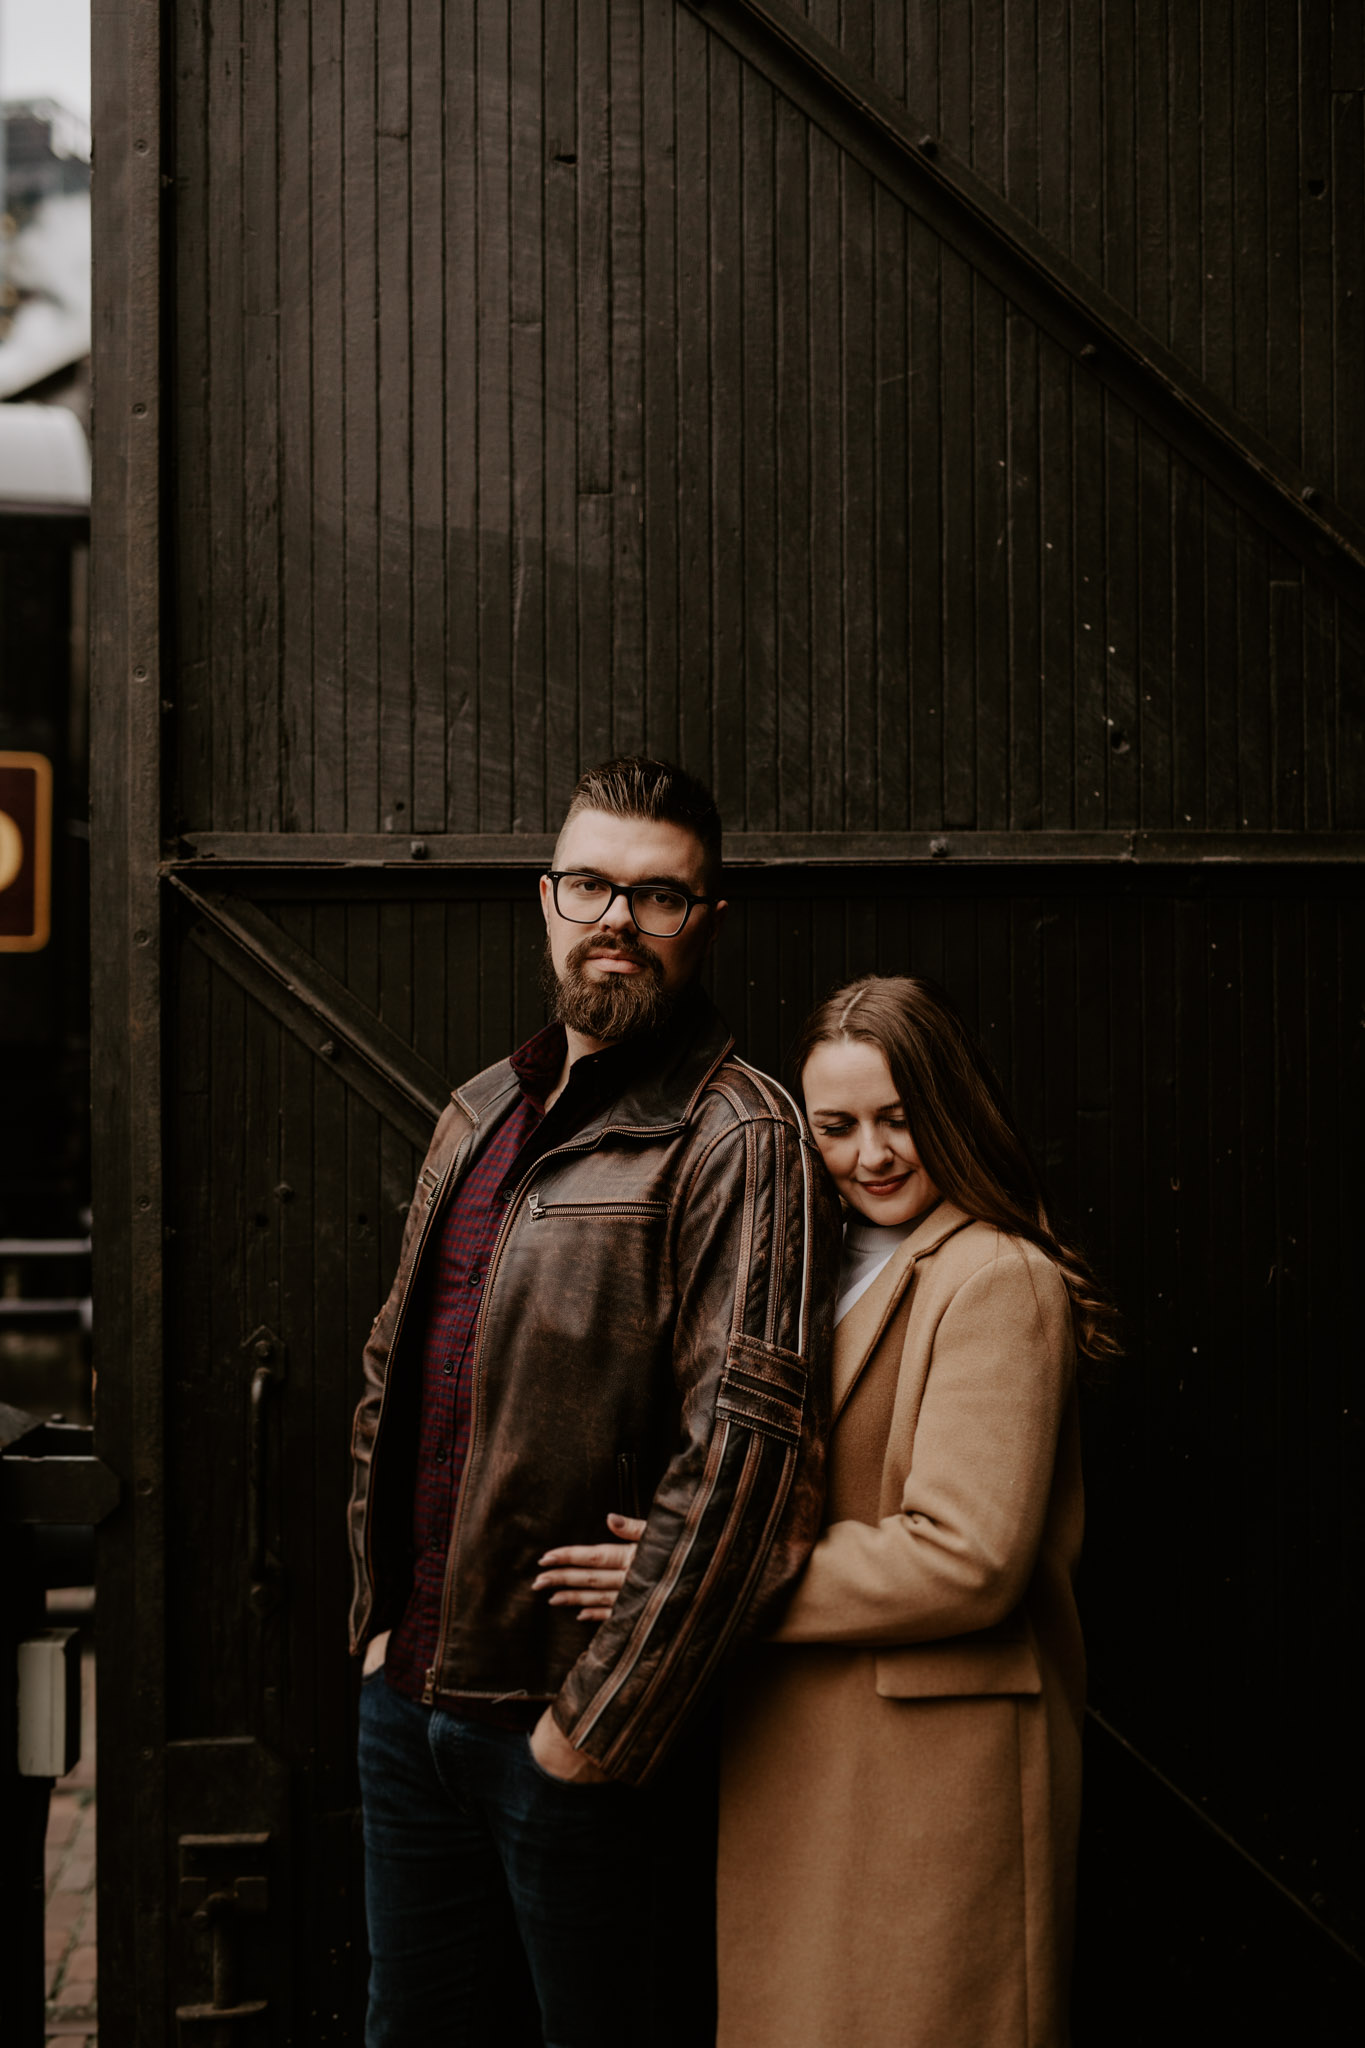 SteamWhistle Brewery Engagement - engagement portraits outside of brewery